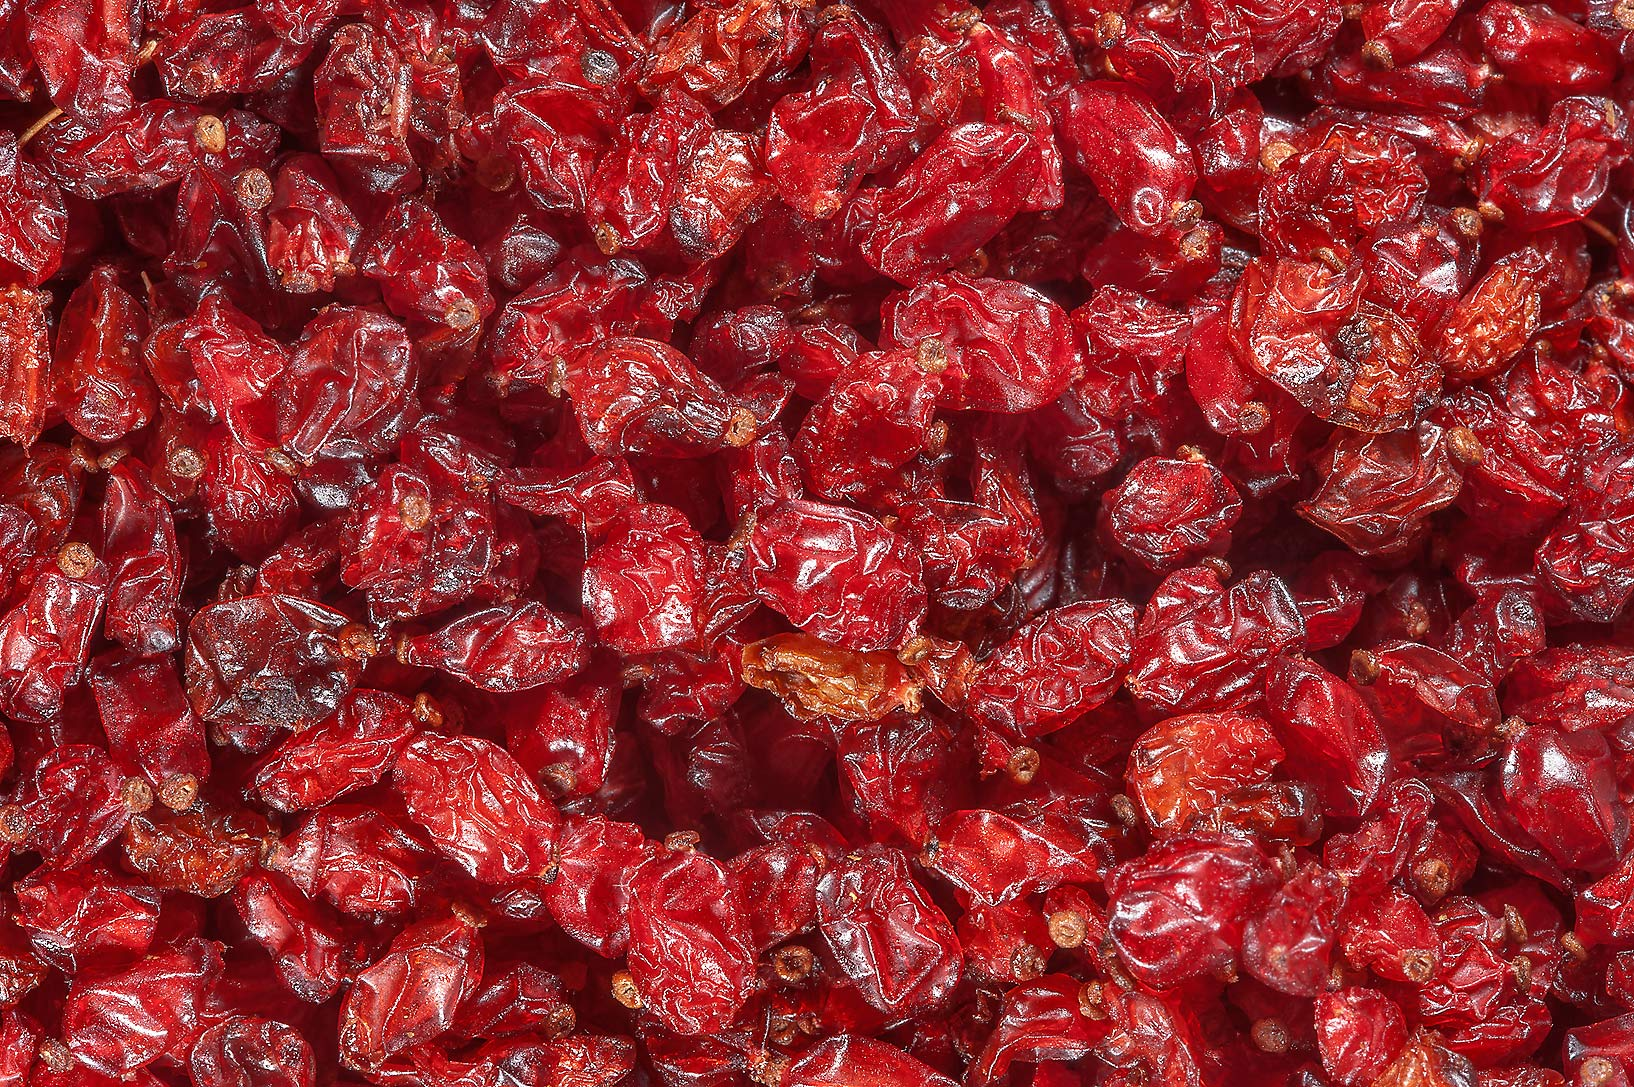 Dried cranberry in spice section in Souq Waqif (Old Market). Doha, Qatar